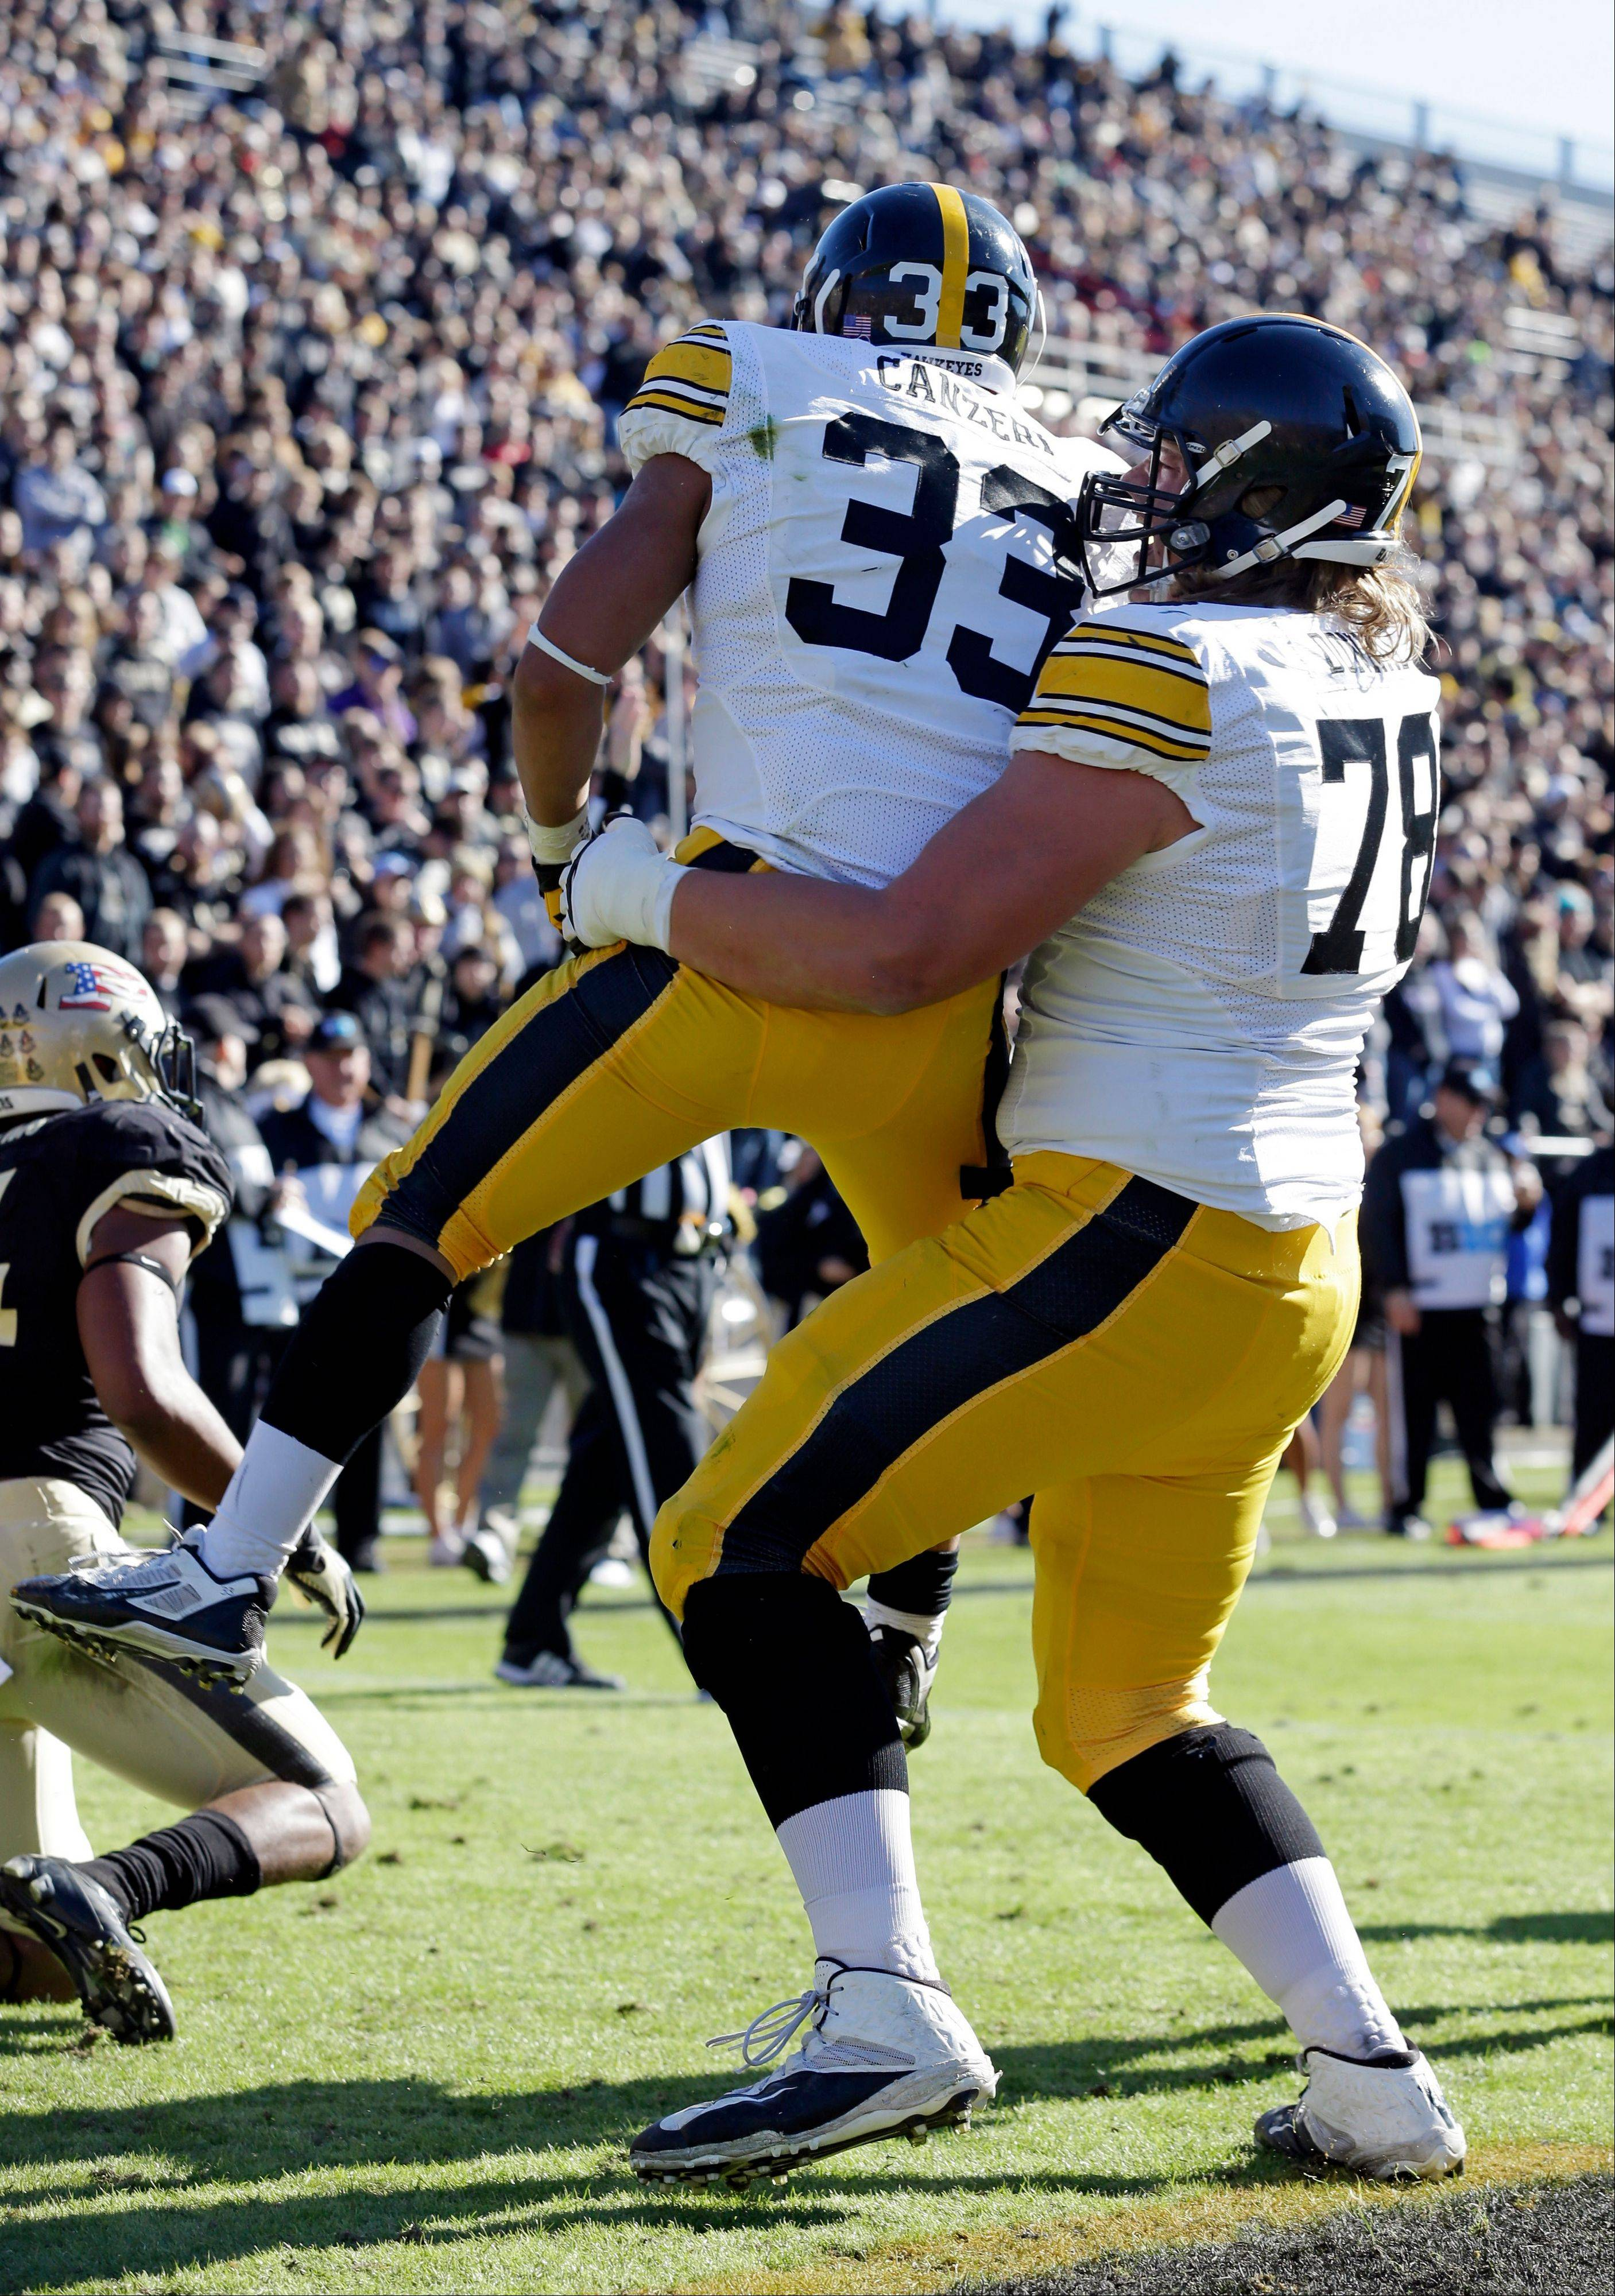 Iowa running back Jordan Canzeri (33) is hoisted by offensive linesman Andrew Donnal after scoring a touchdown against Purdue during the first half of an NCAA college football game in West Lafayette, Ind., Saturday, Nov. 9, 2013.